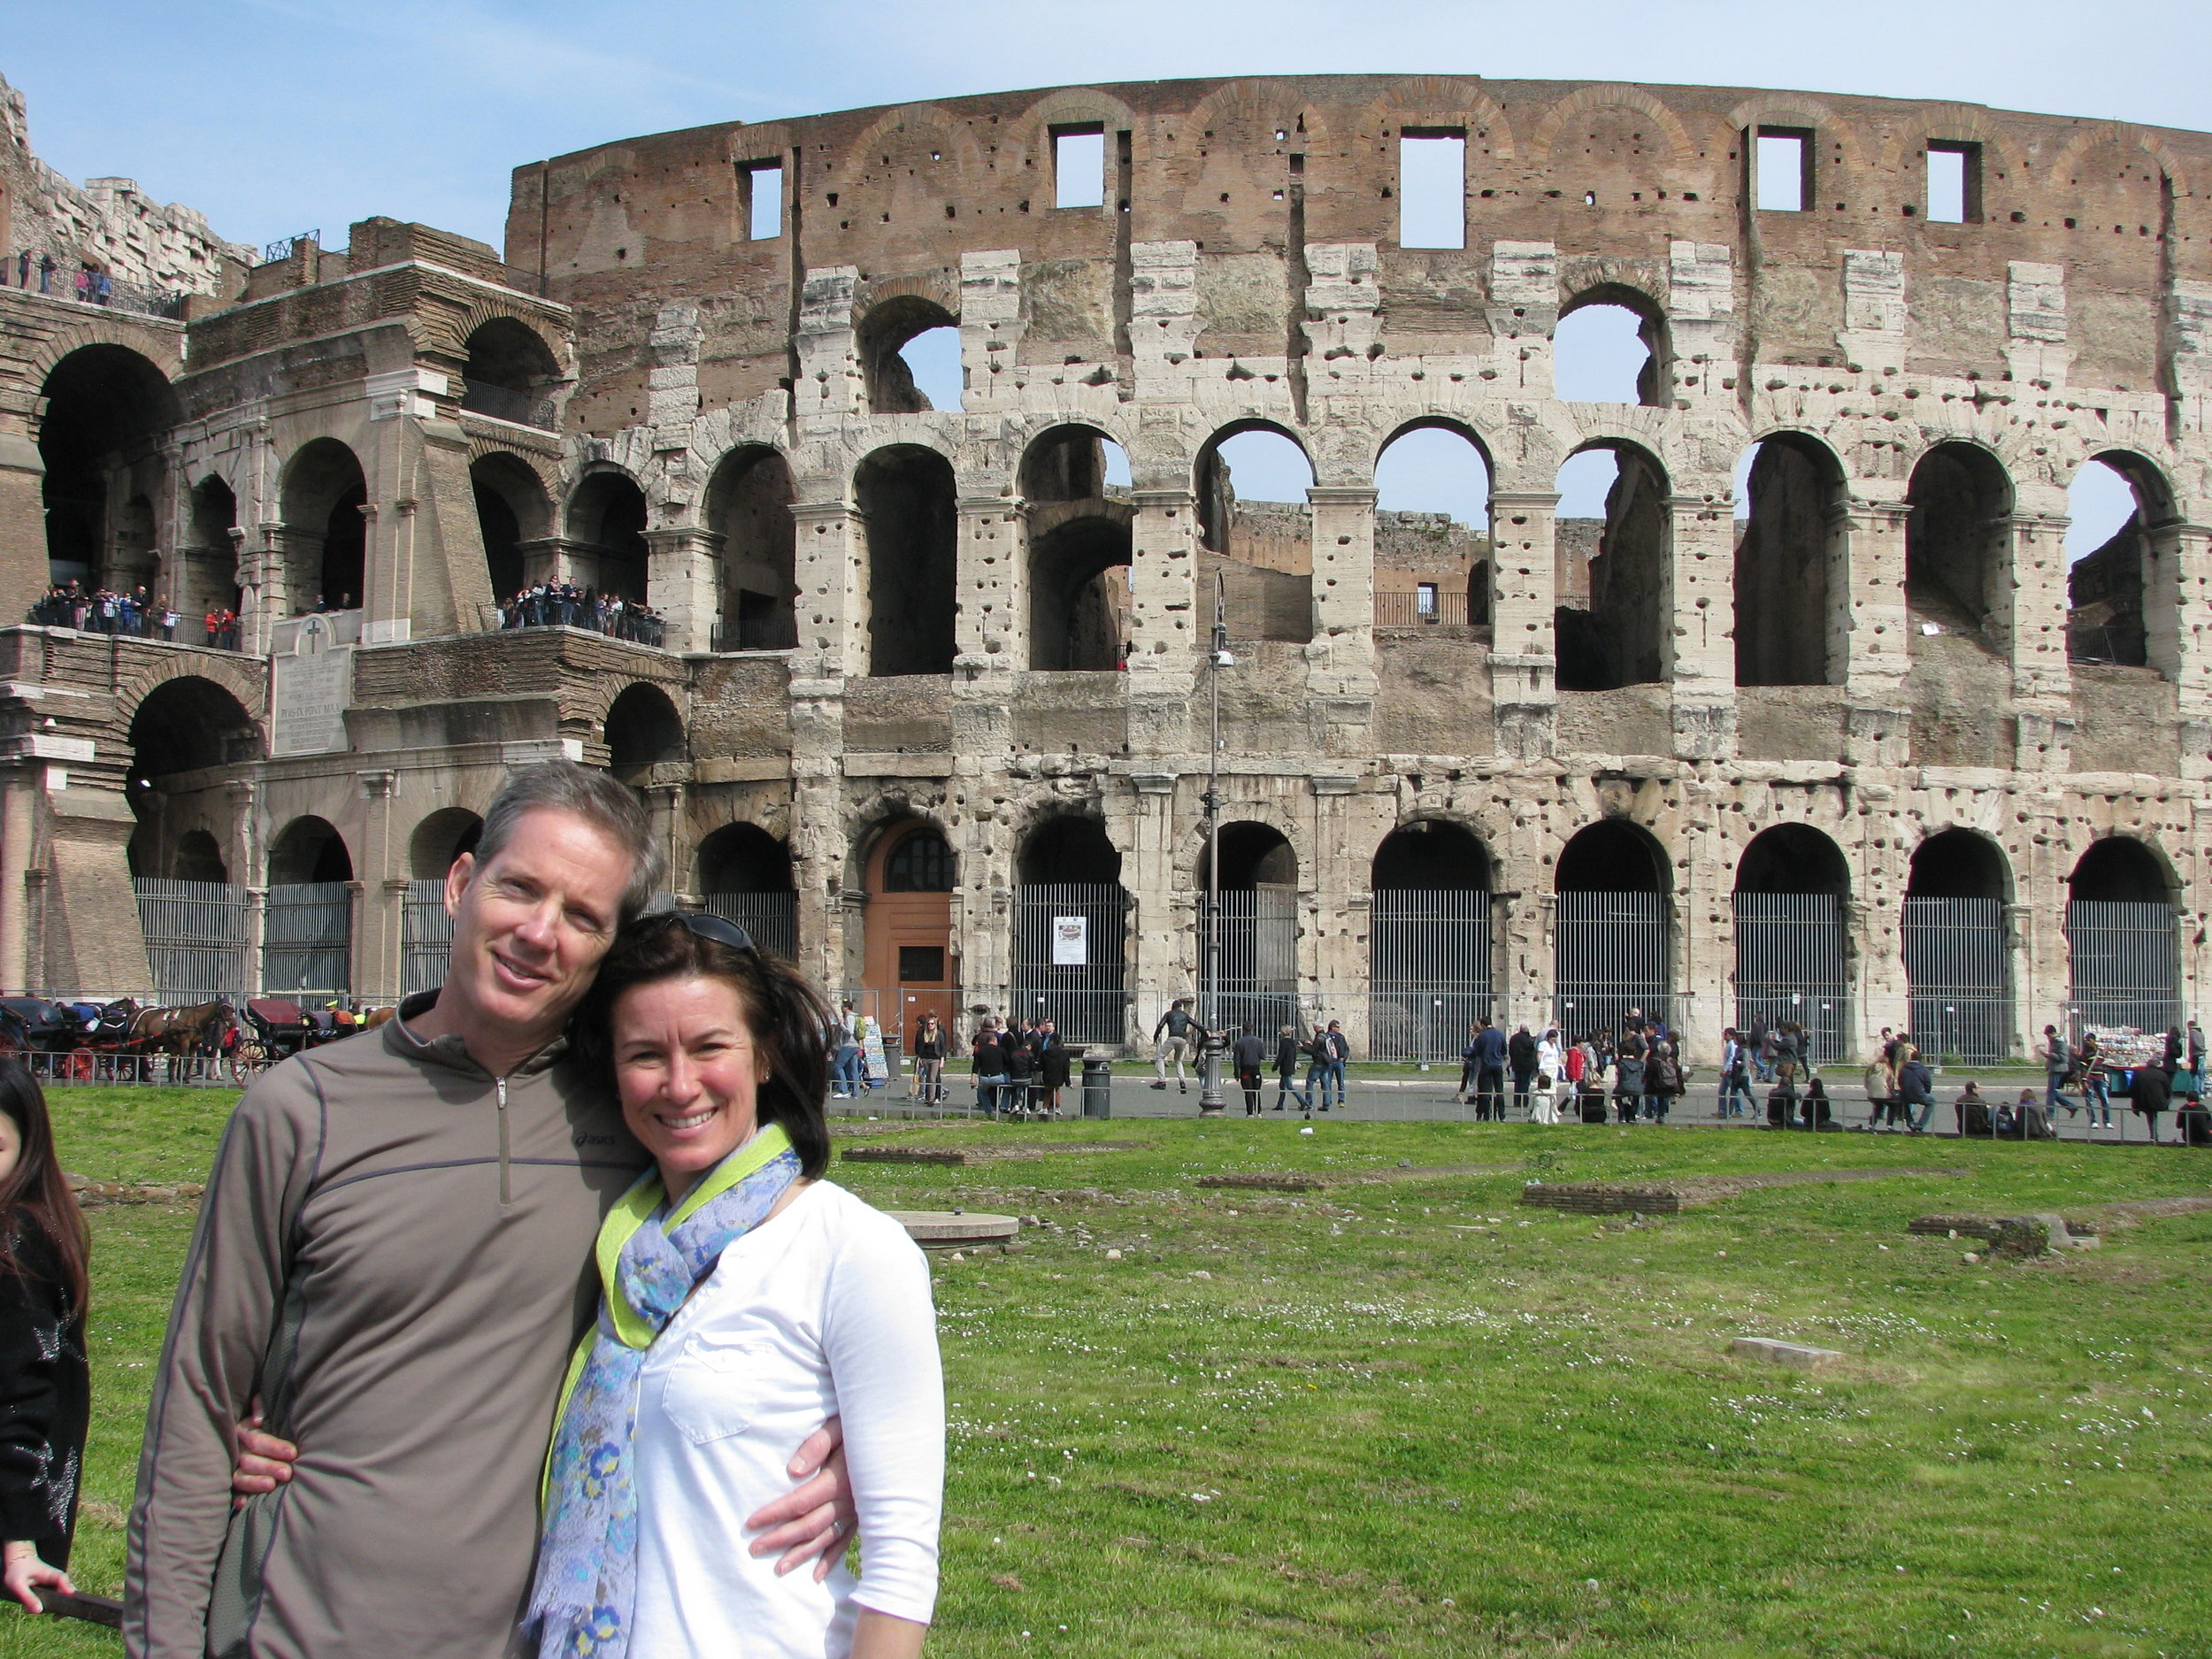 Laura and Tom in front of Colosseum